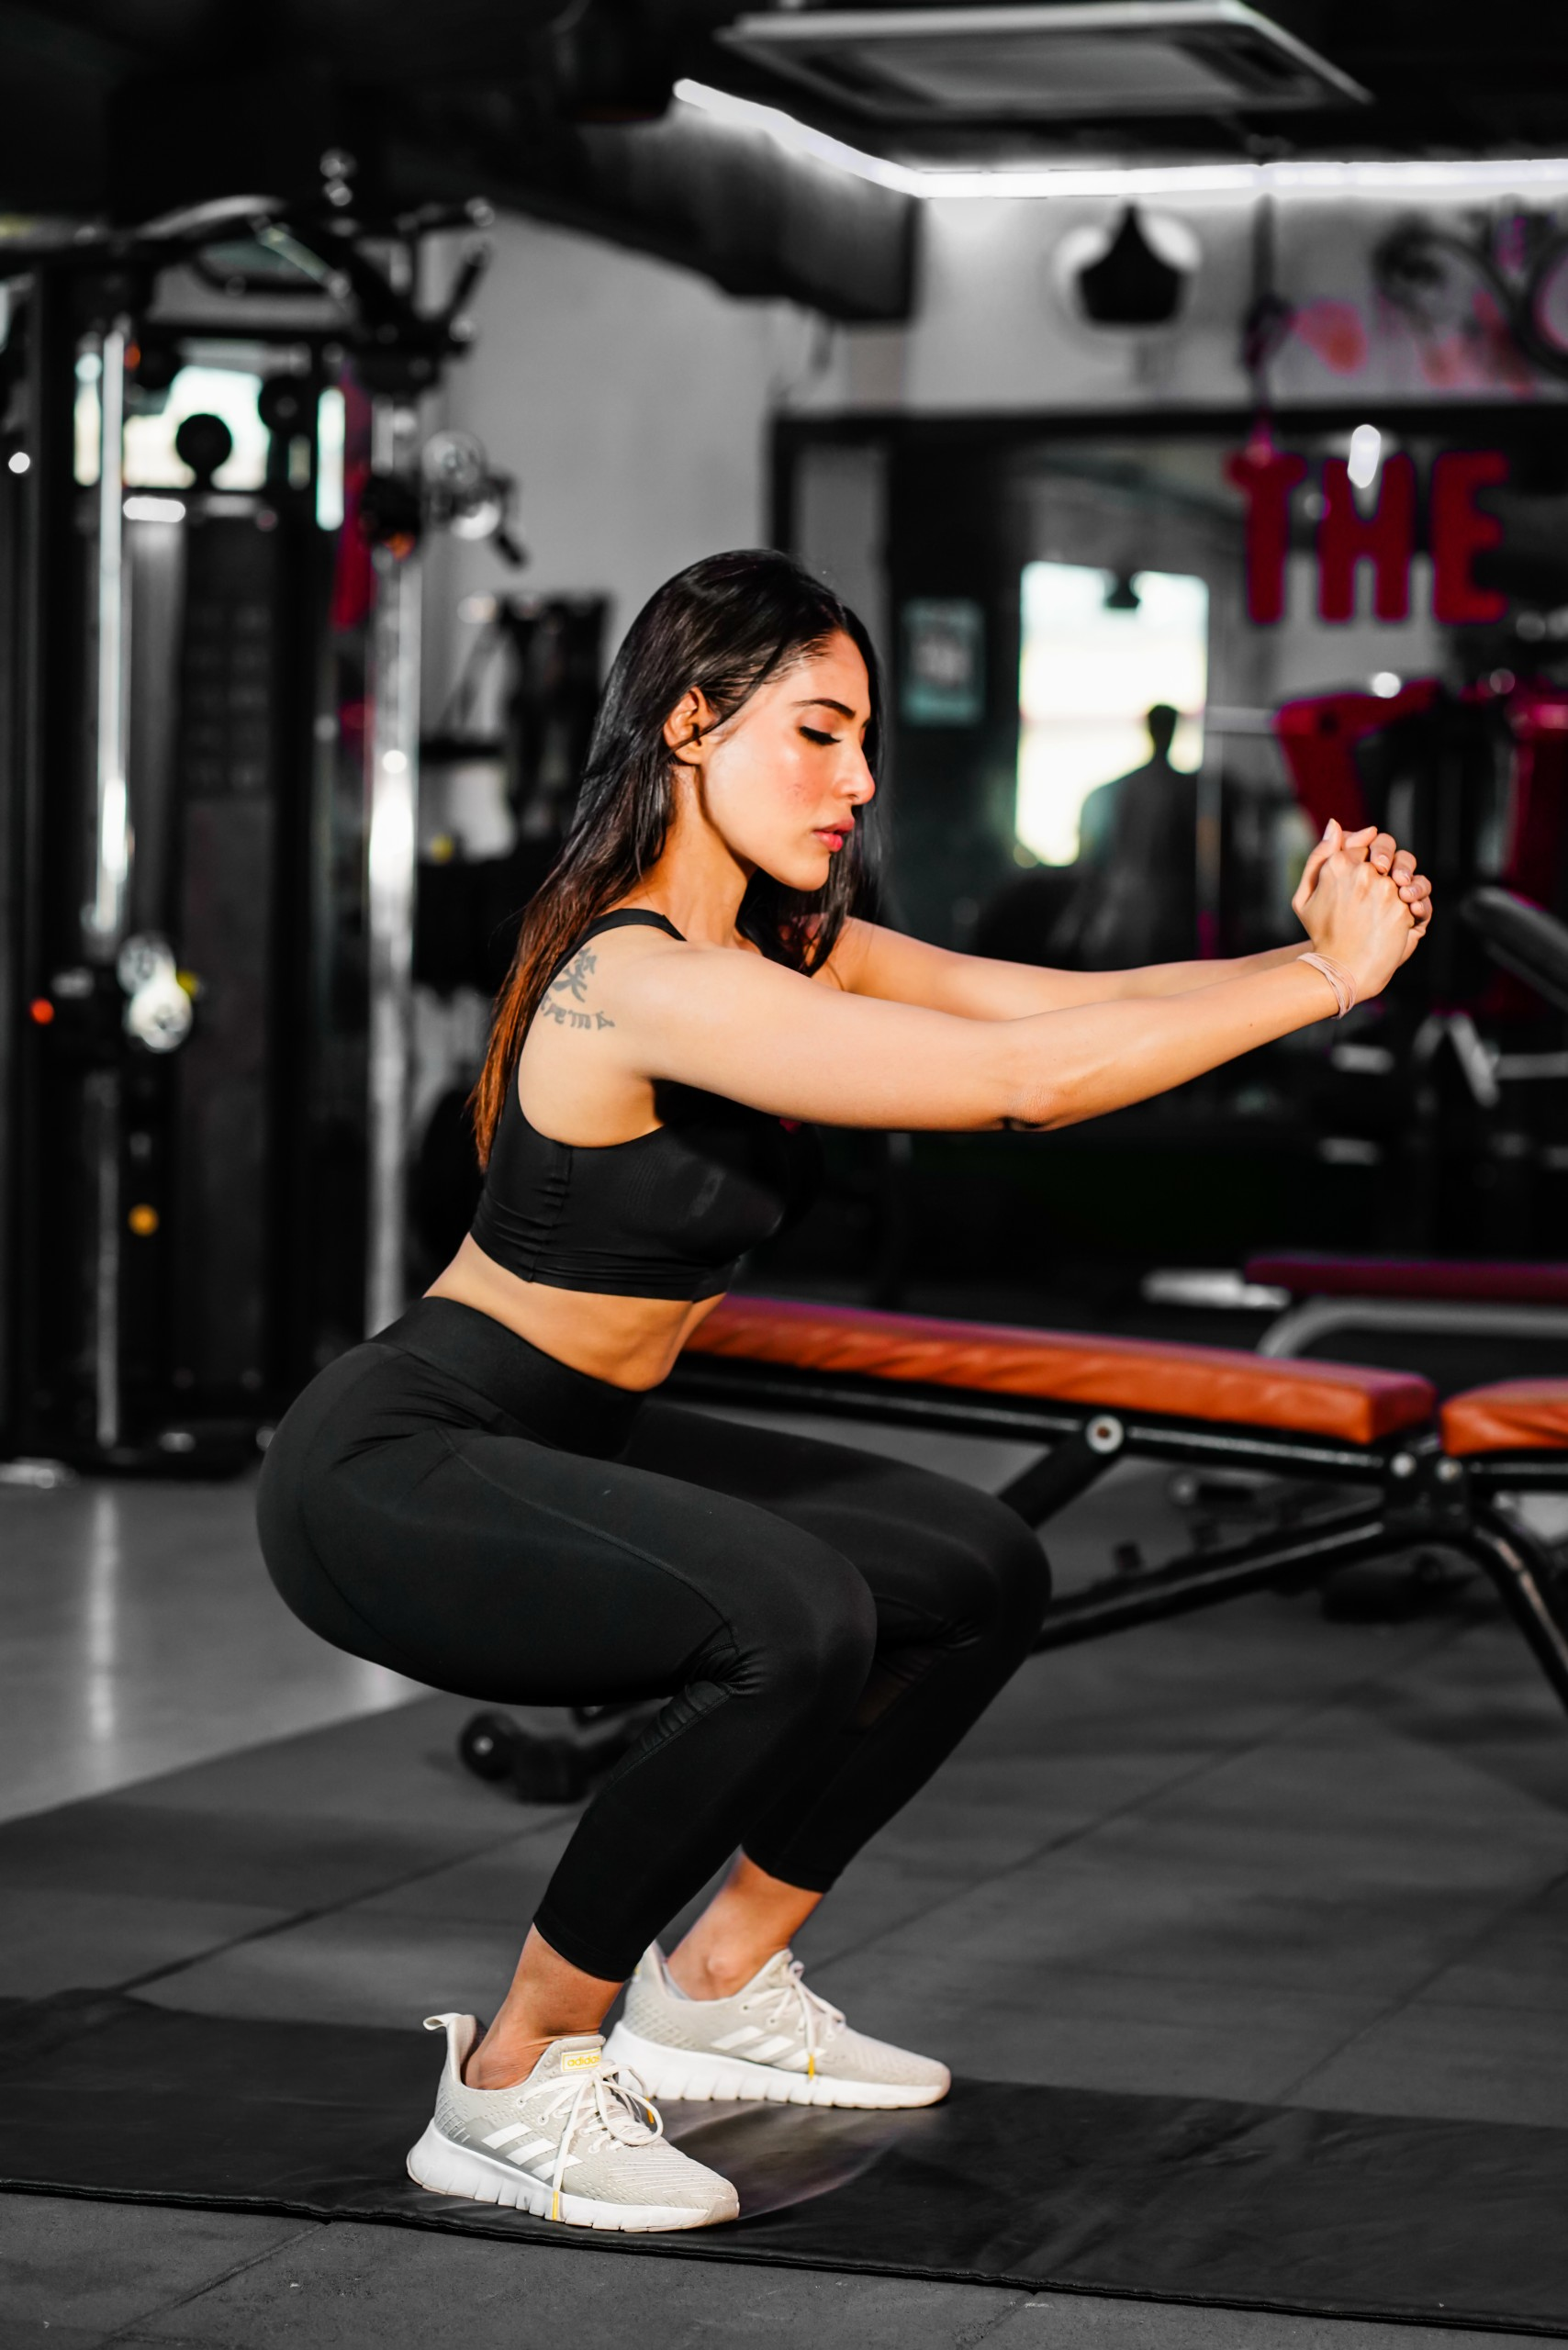 A girl squatting in the gym